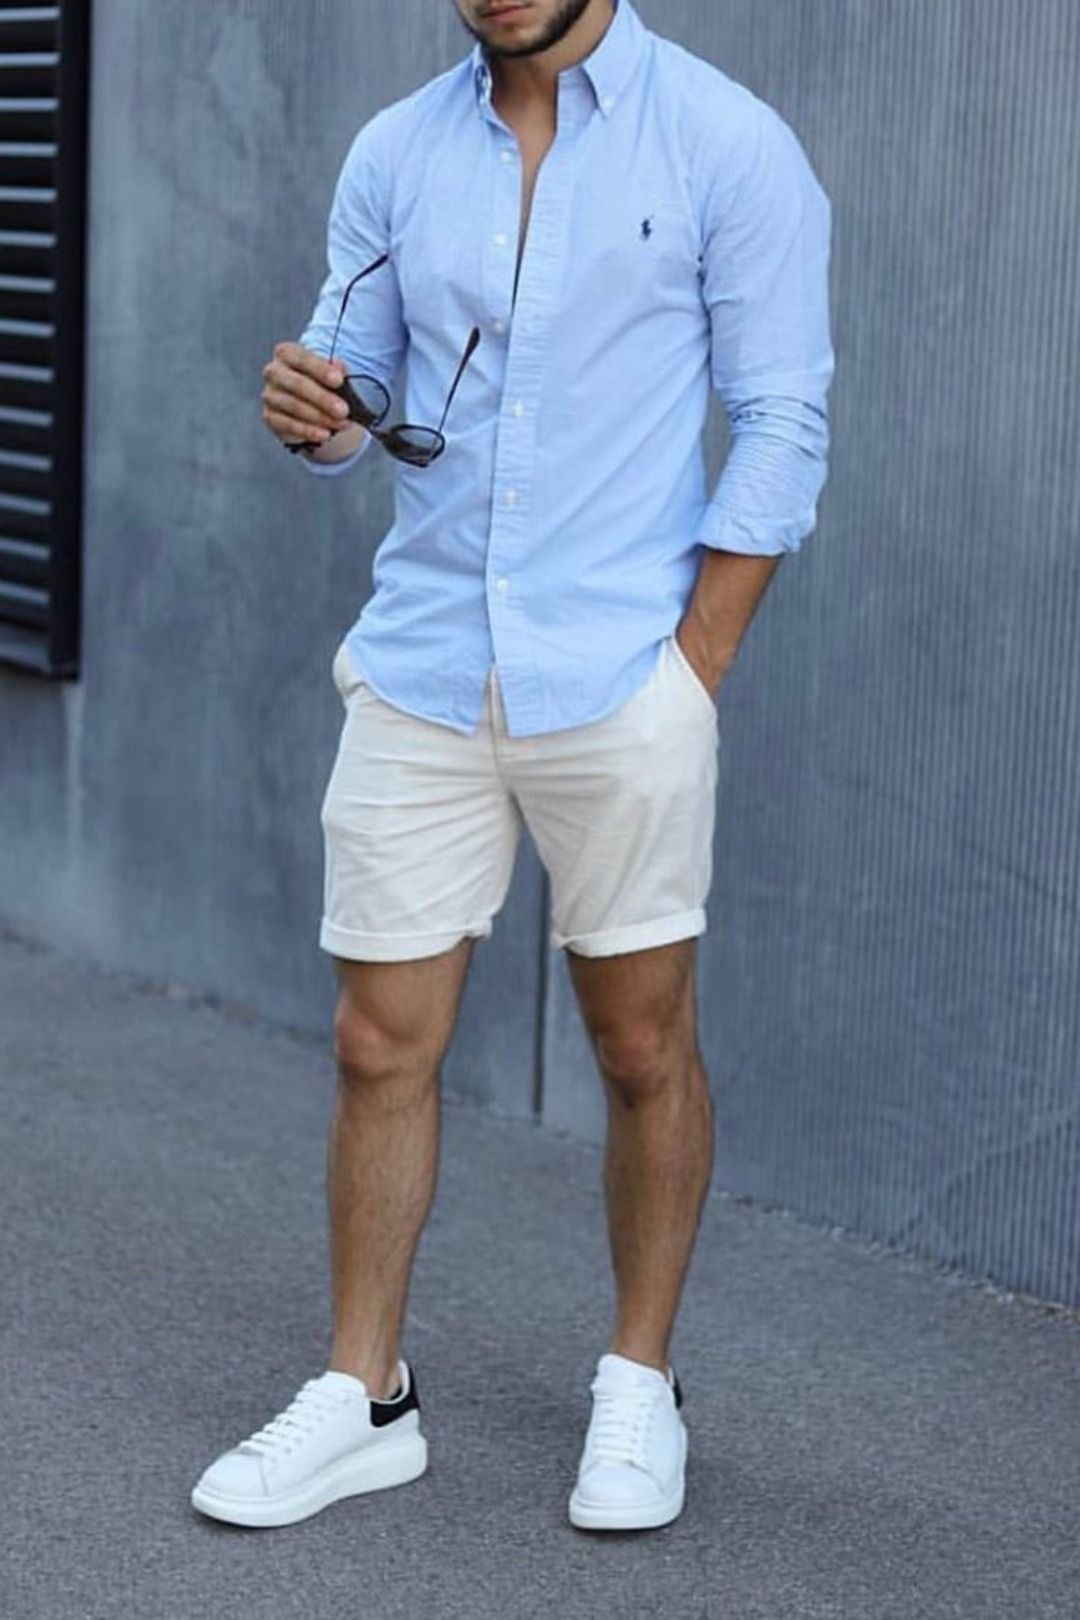 Pin By Genny Bally On Roger S Outfits In 2020 Mens Summer Outfits Mens Casual Outfits Summer Vacation Outfits Men